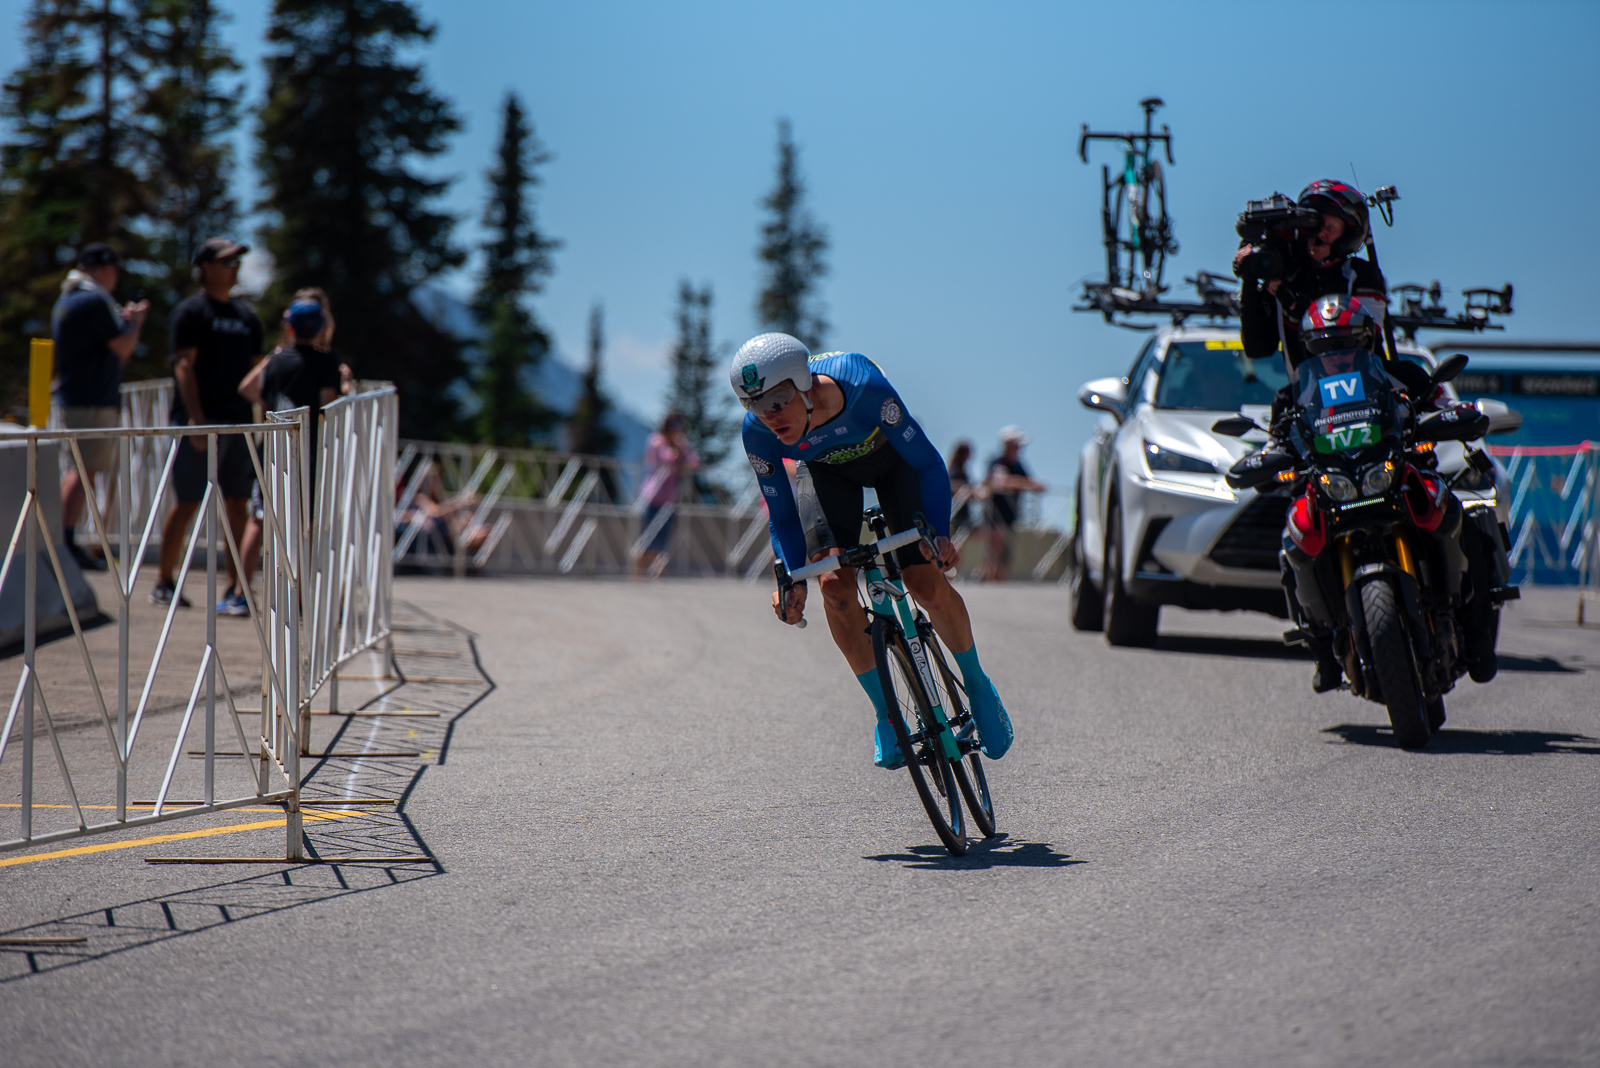 Sergei Tvetcov (Worthy Pro Cycling) on the final descent during the Prologue time trial. 2019 Tour of Utah. Photo by Steven L. Sheffield